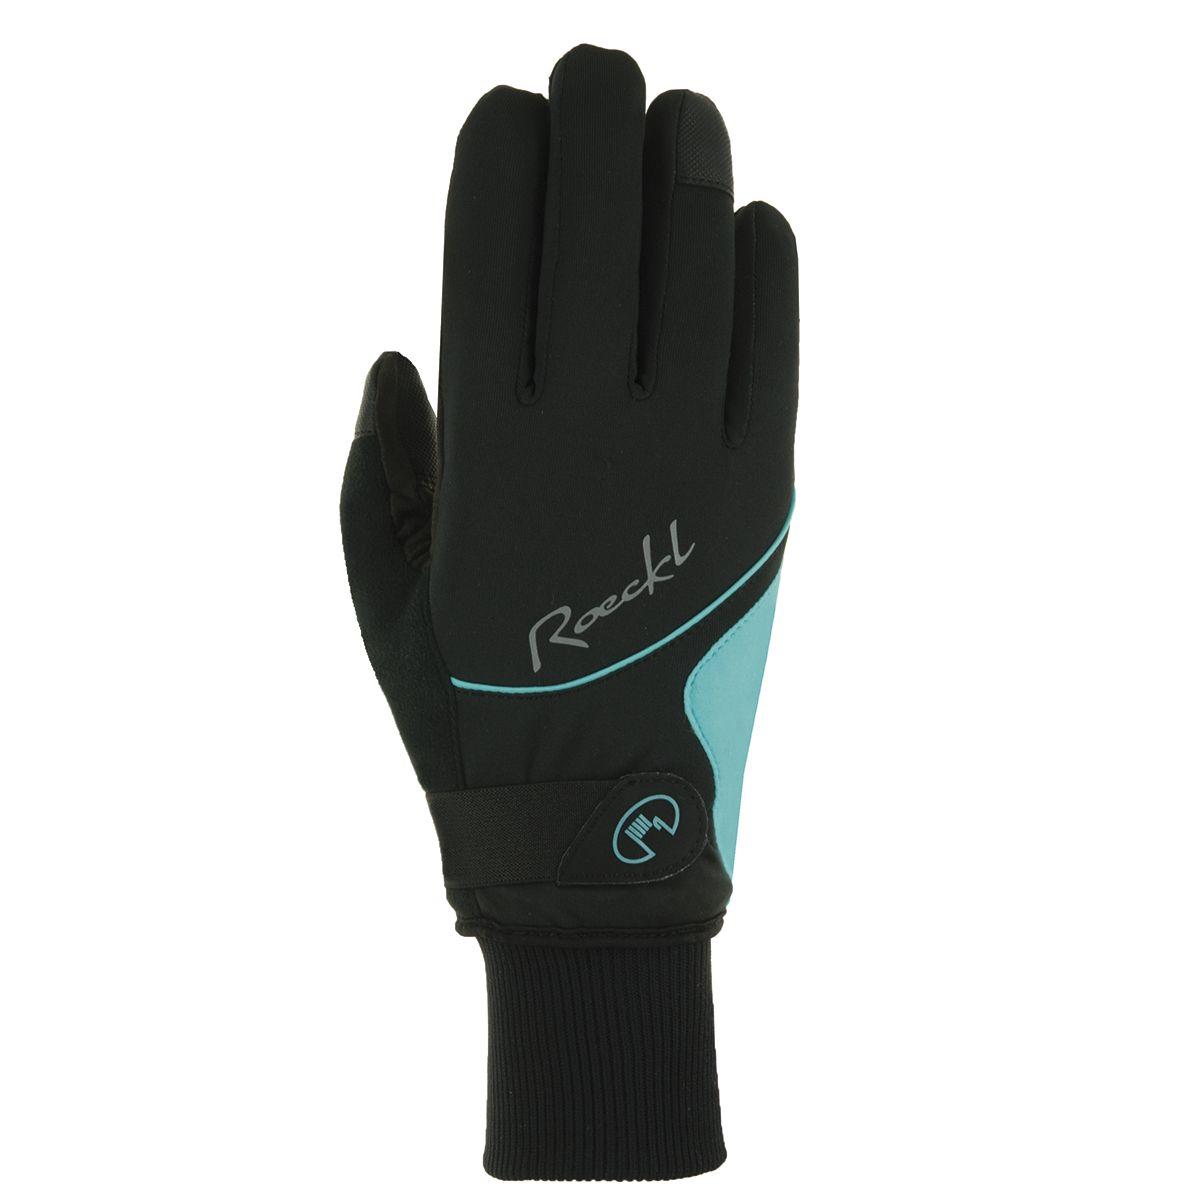 WALLIS women's winter riding gloves